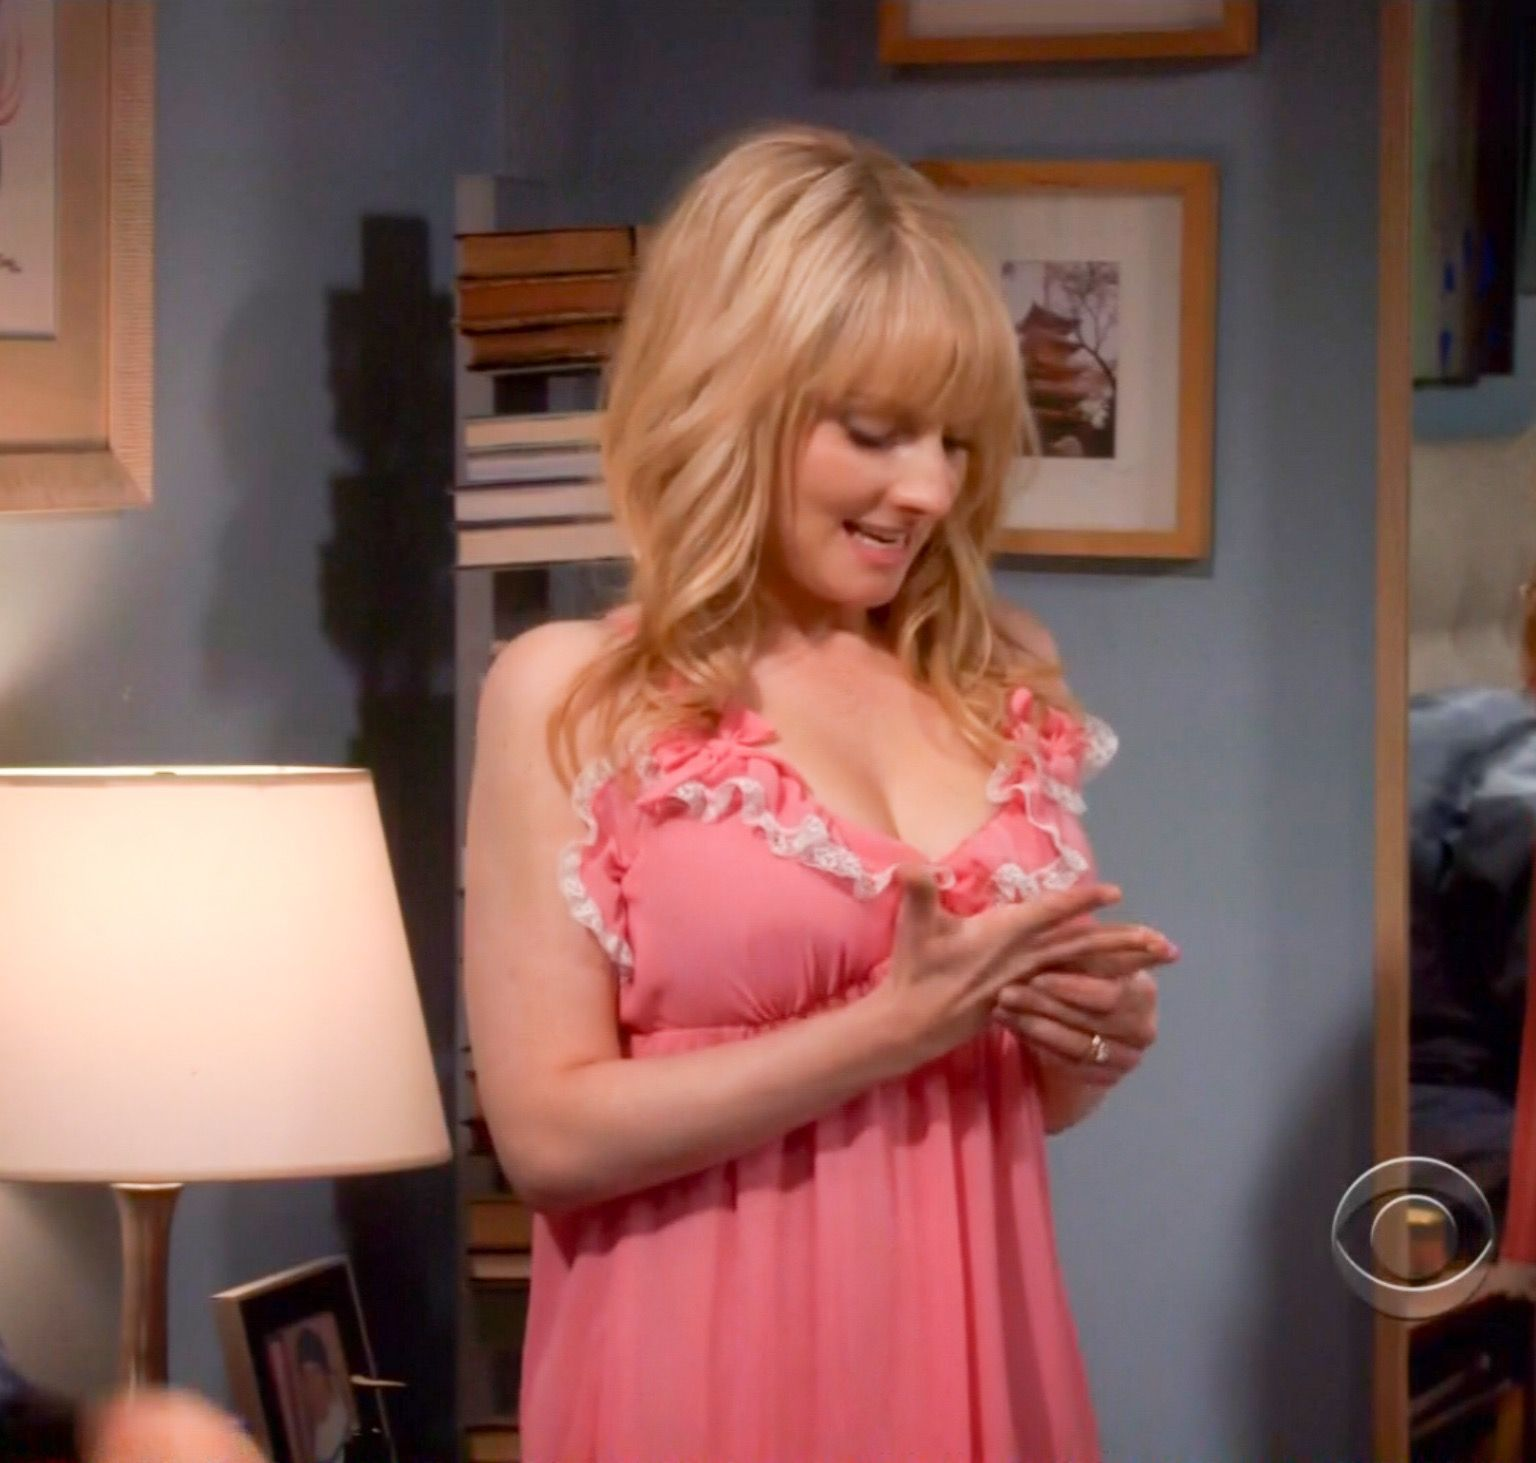 Pin on Melissa? Melissa Rauch! Its You!